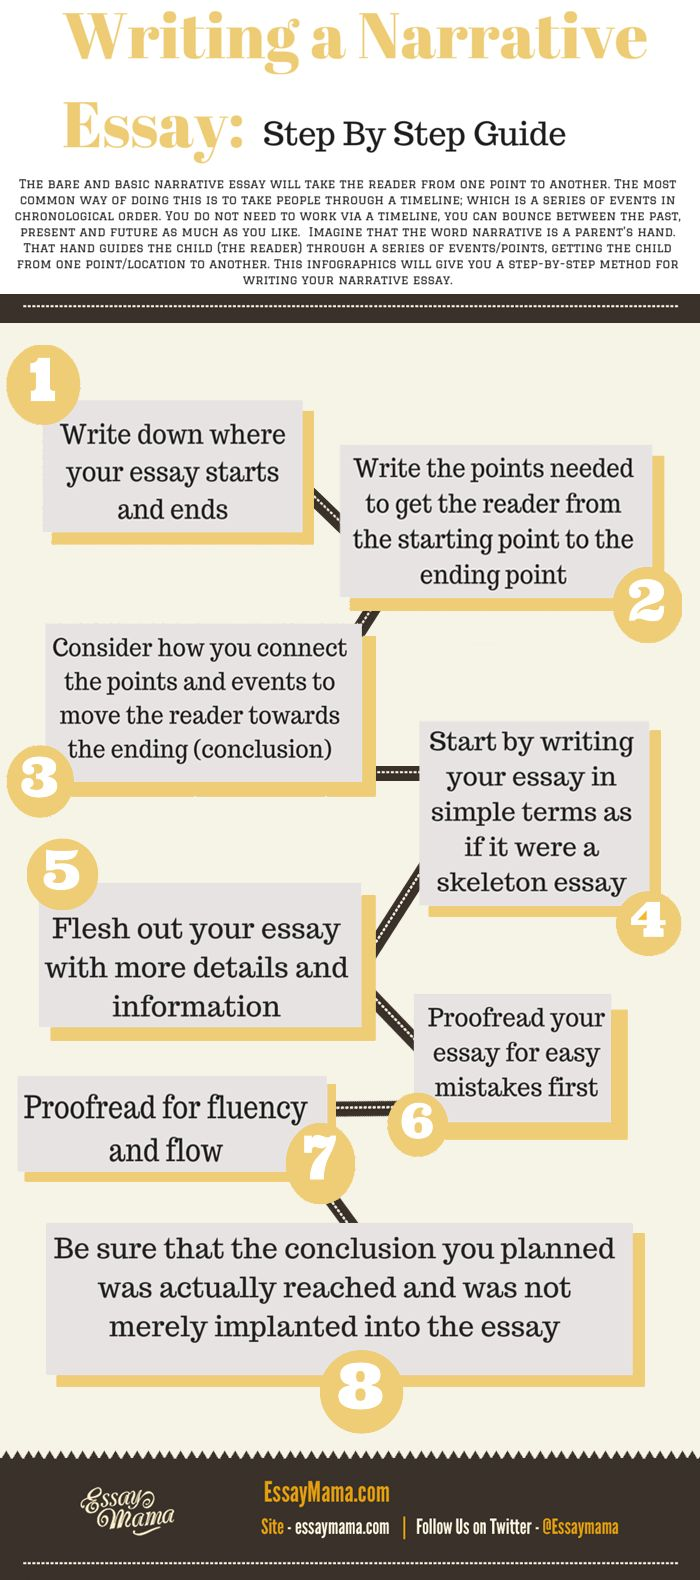 best essay writing tips ideas marvelous synonym writing a narrative essay can be a daunting task for students